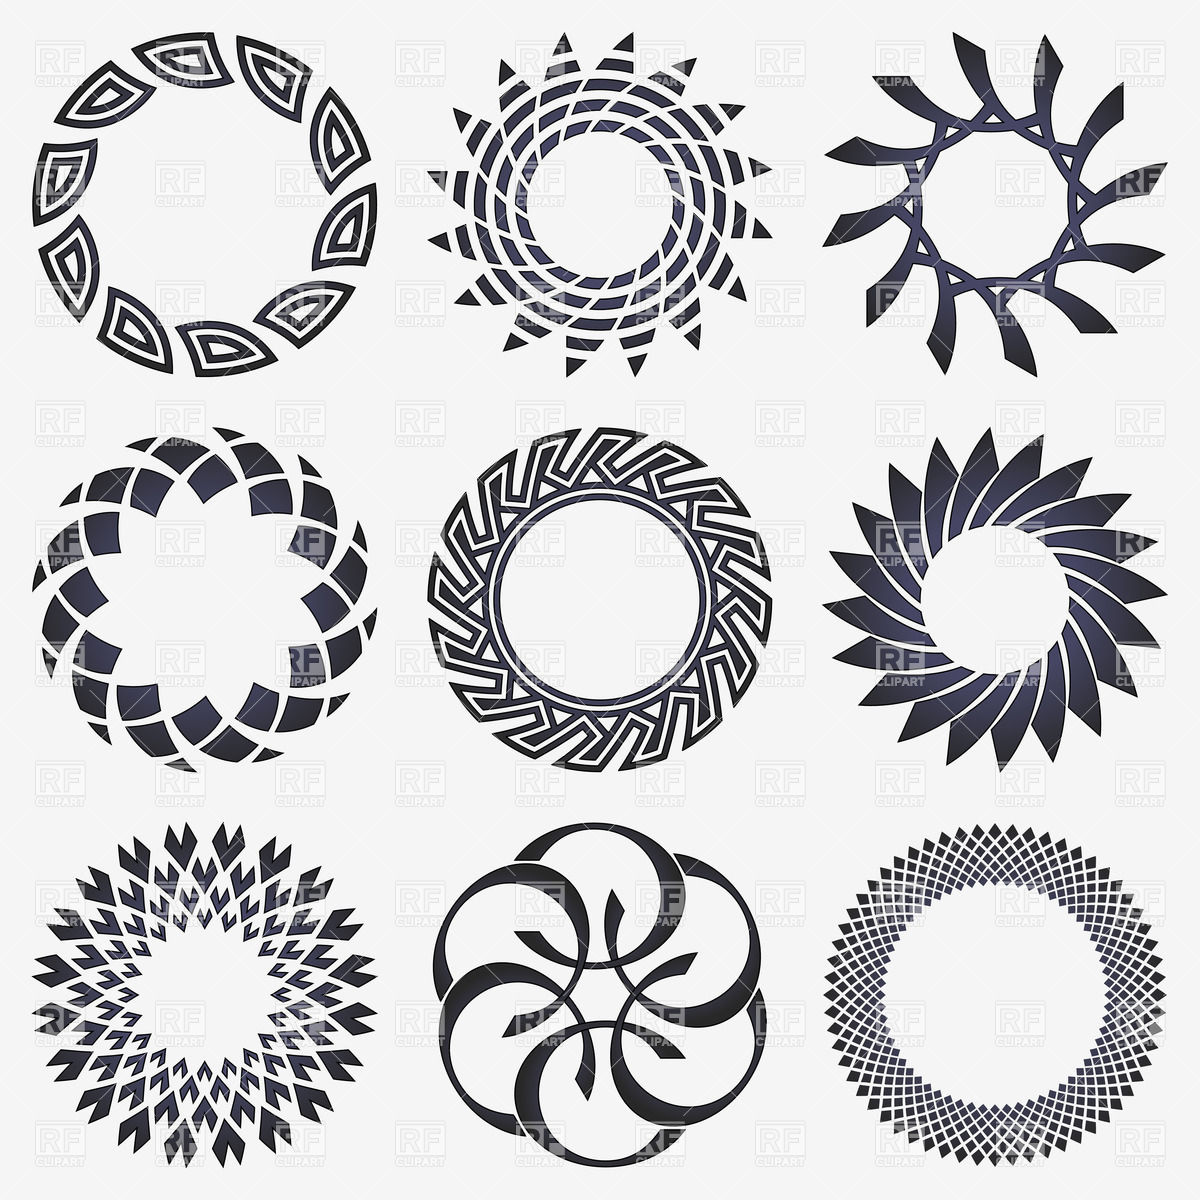 Round shape design clipart vector black and white Round shape design clipart 7 » Clipart Station vector black and white